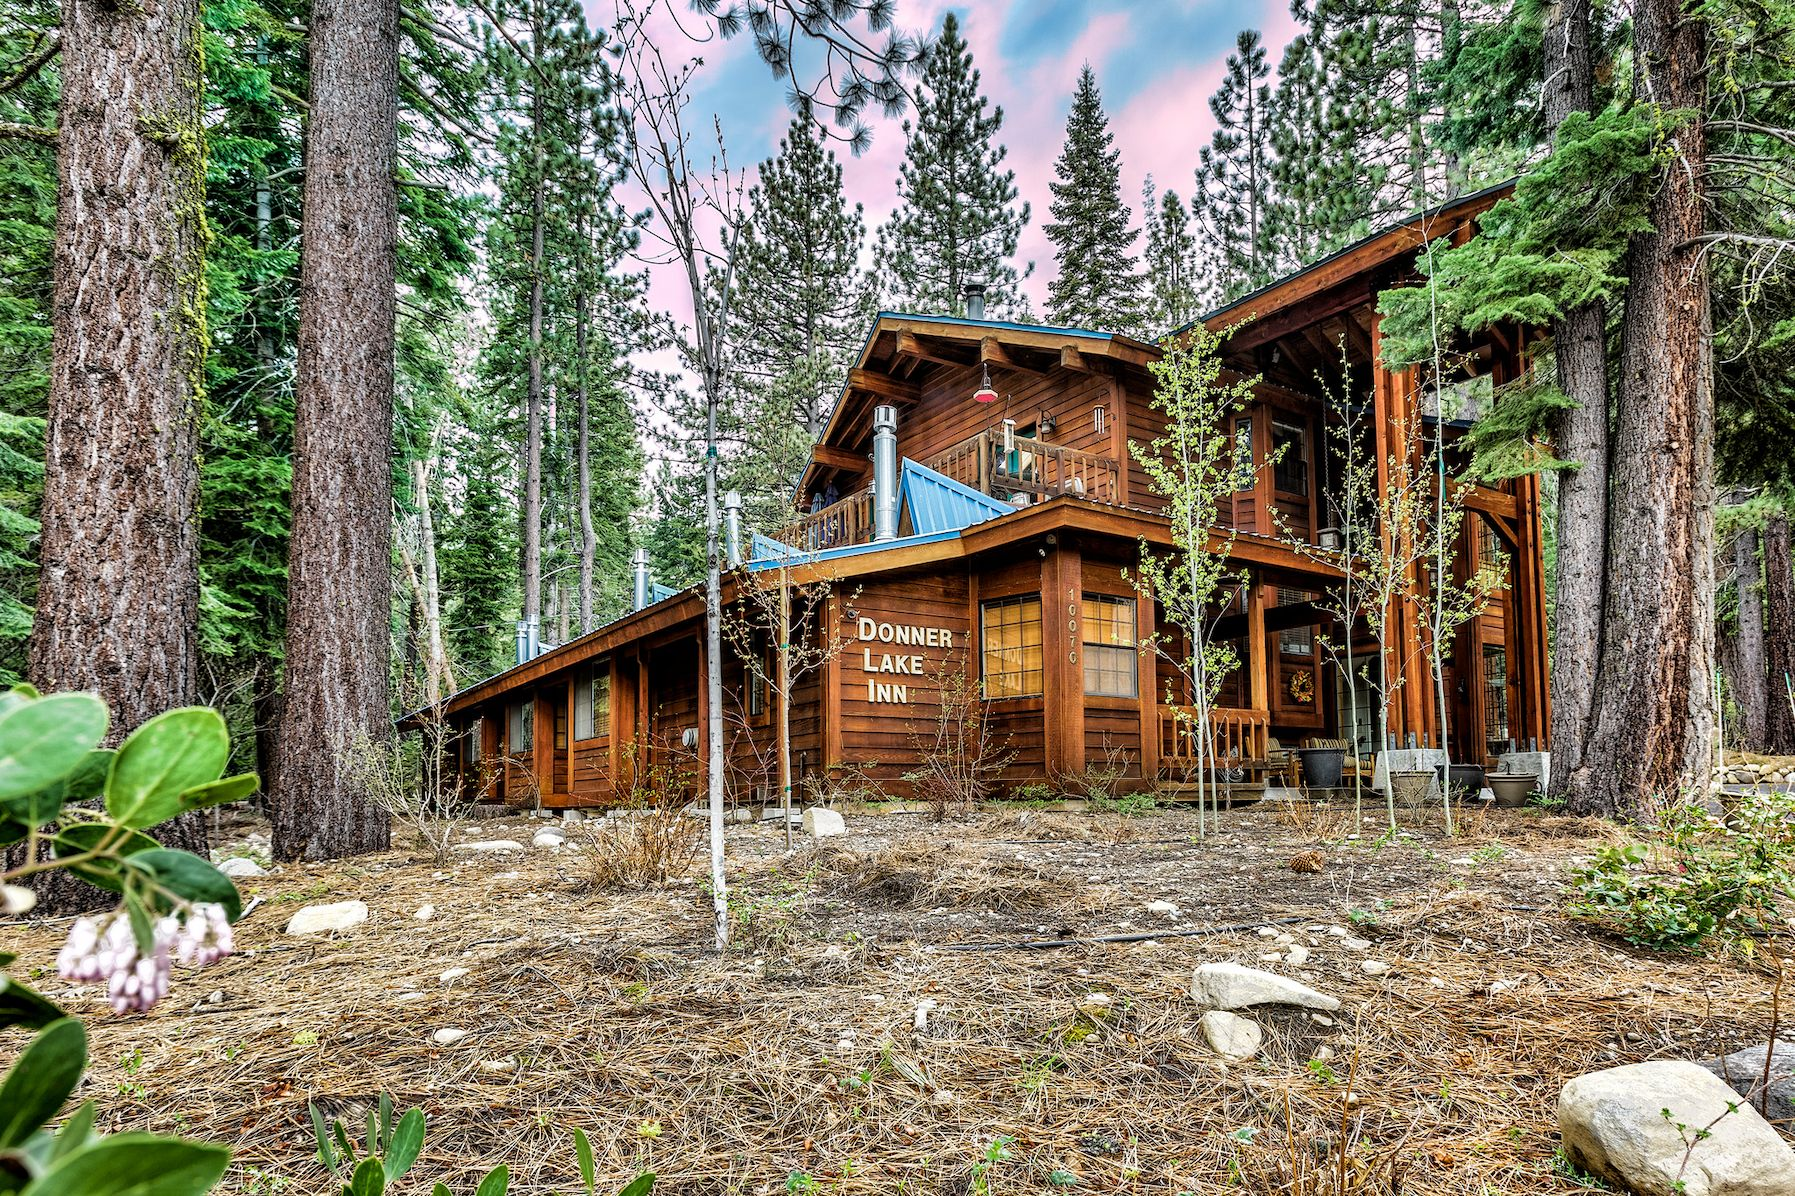 Book a stay at the Donner Lake Inn Bed and Breakfast.